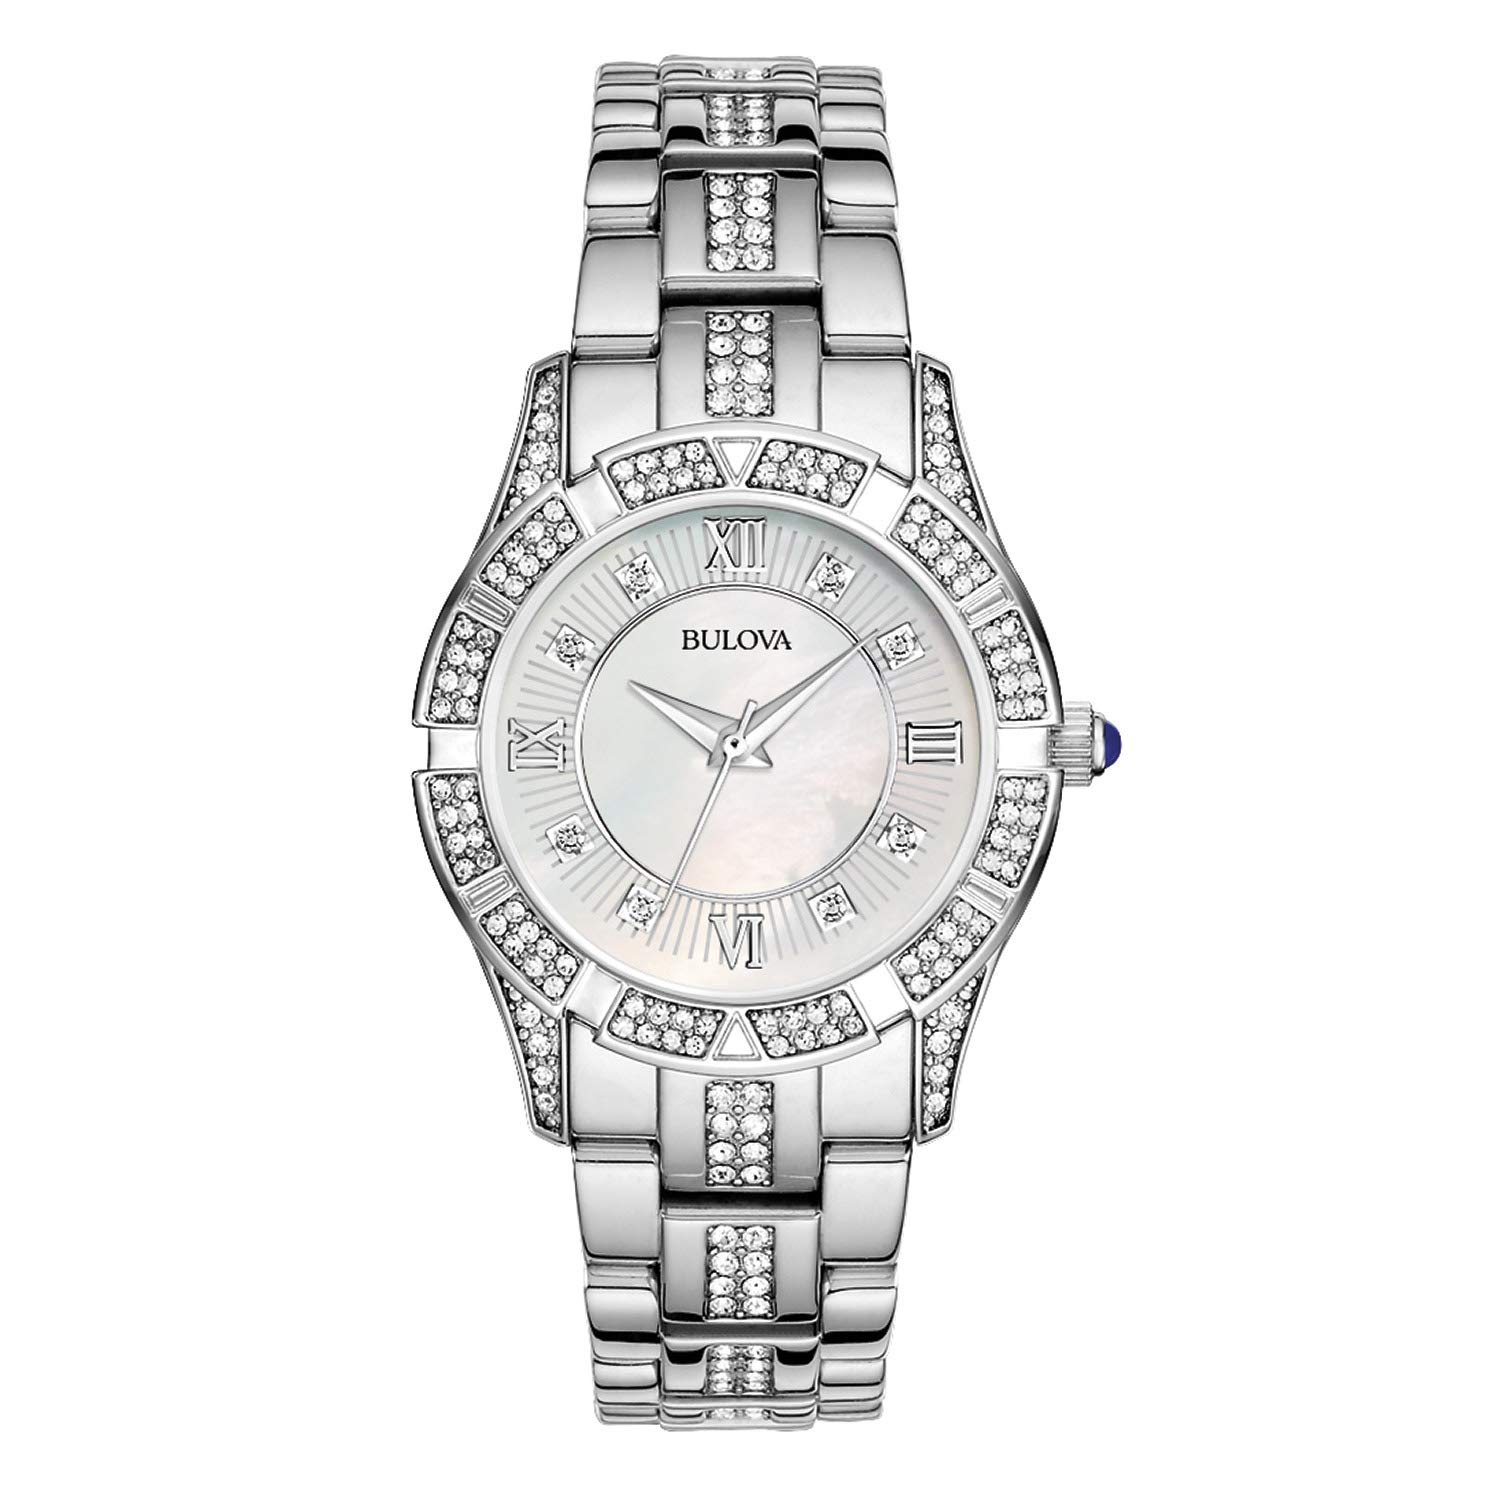 Bulova Women's 96L116 Swarovski Crystal Stainless Steel Watch